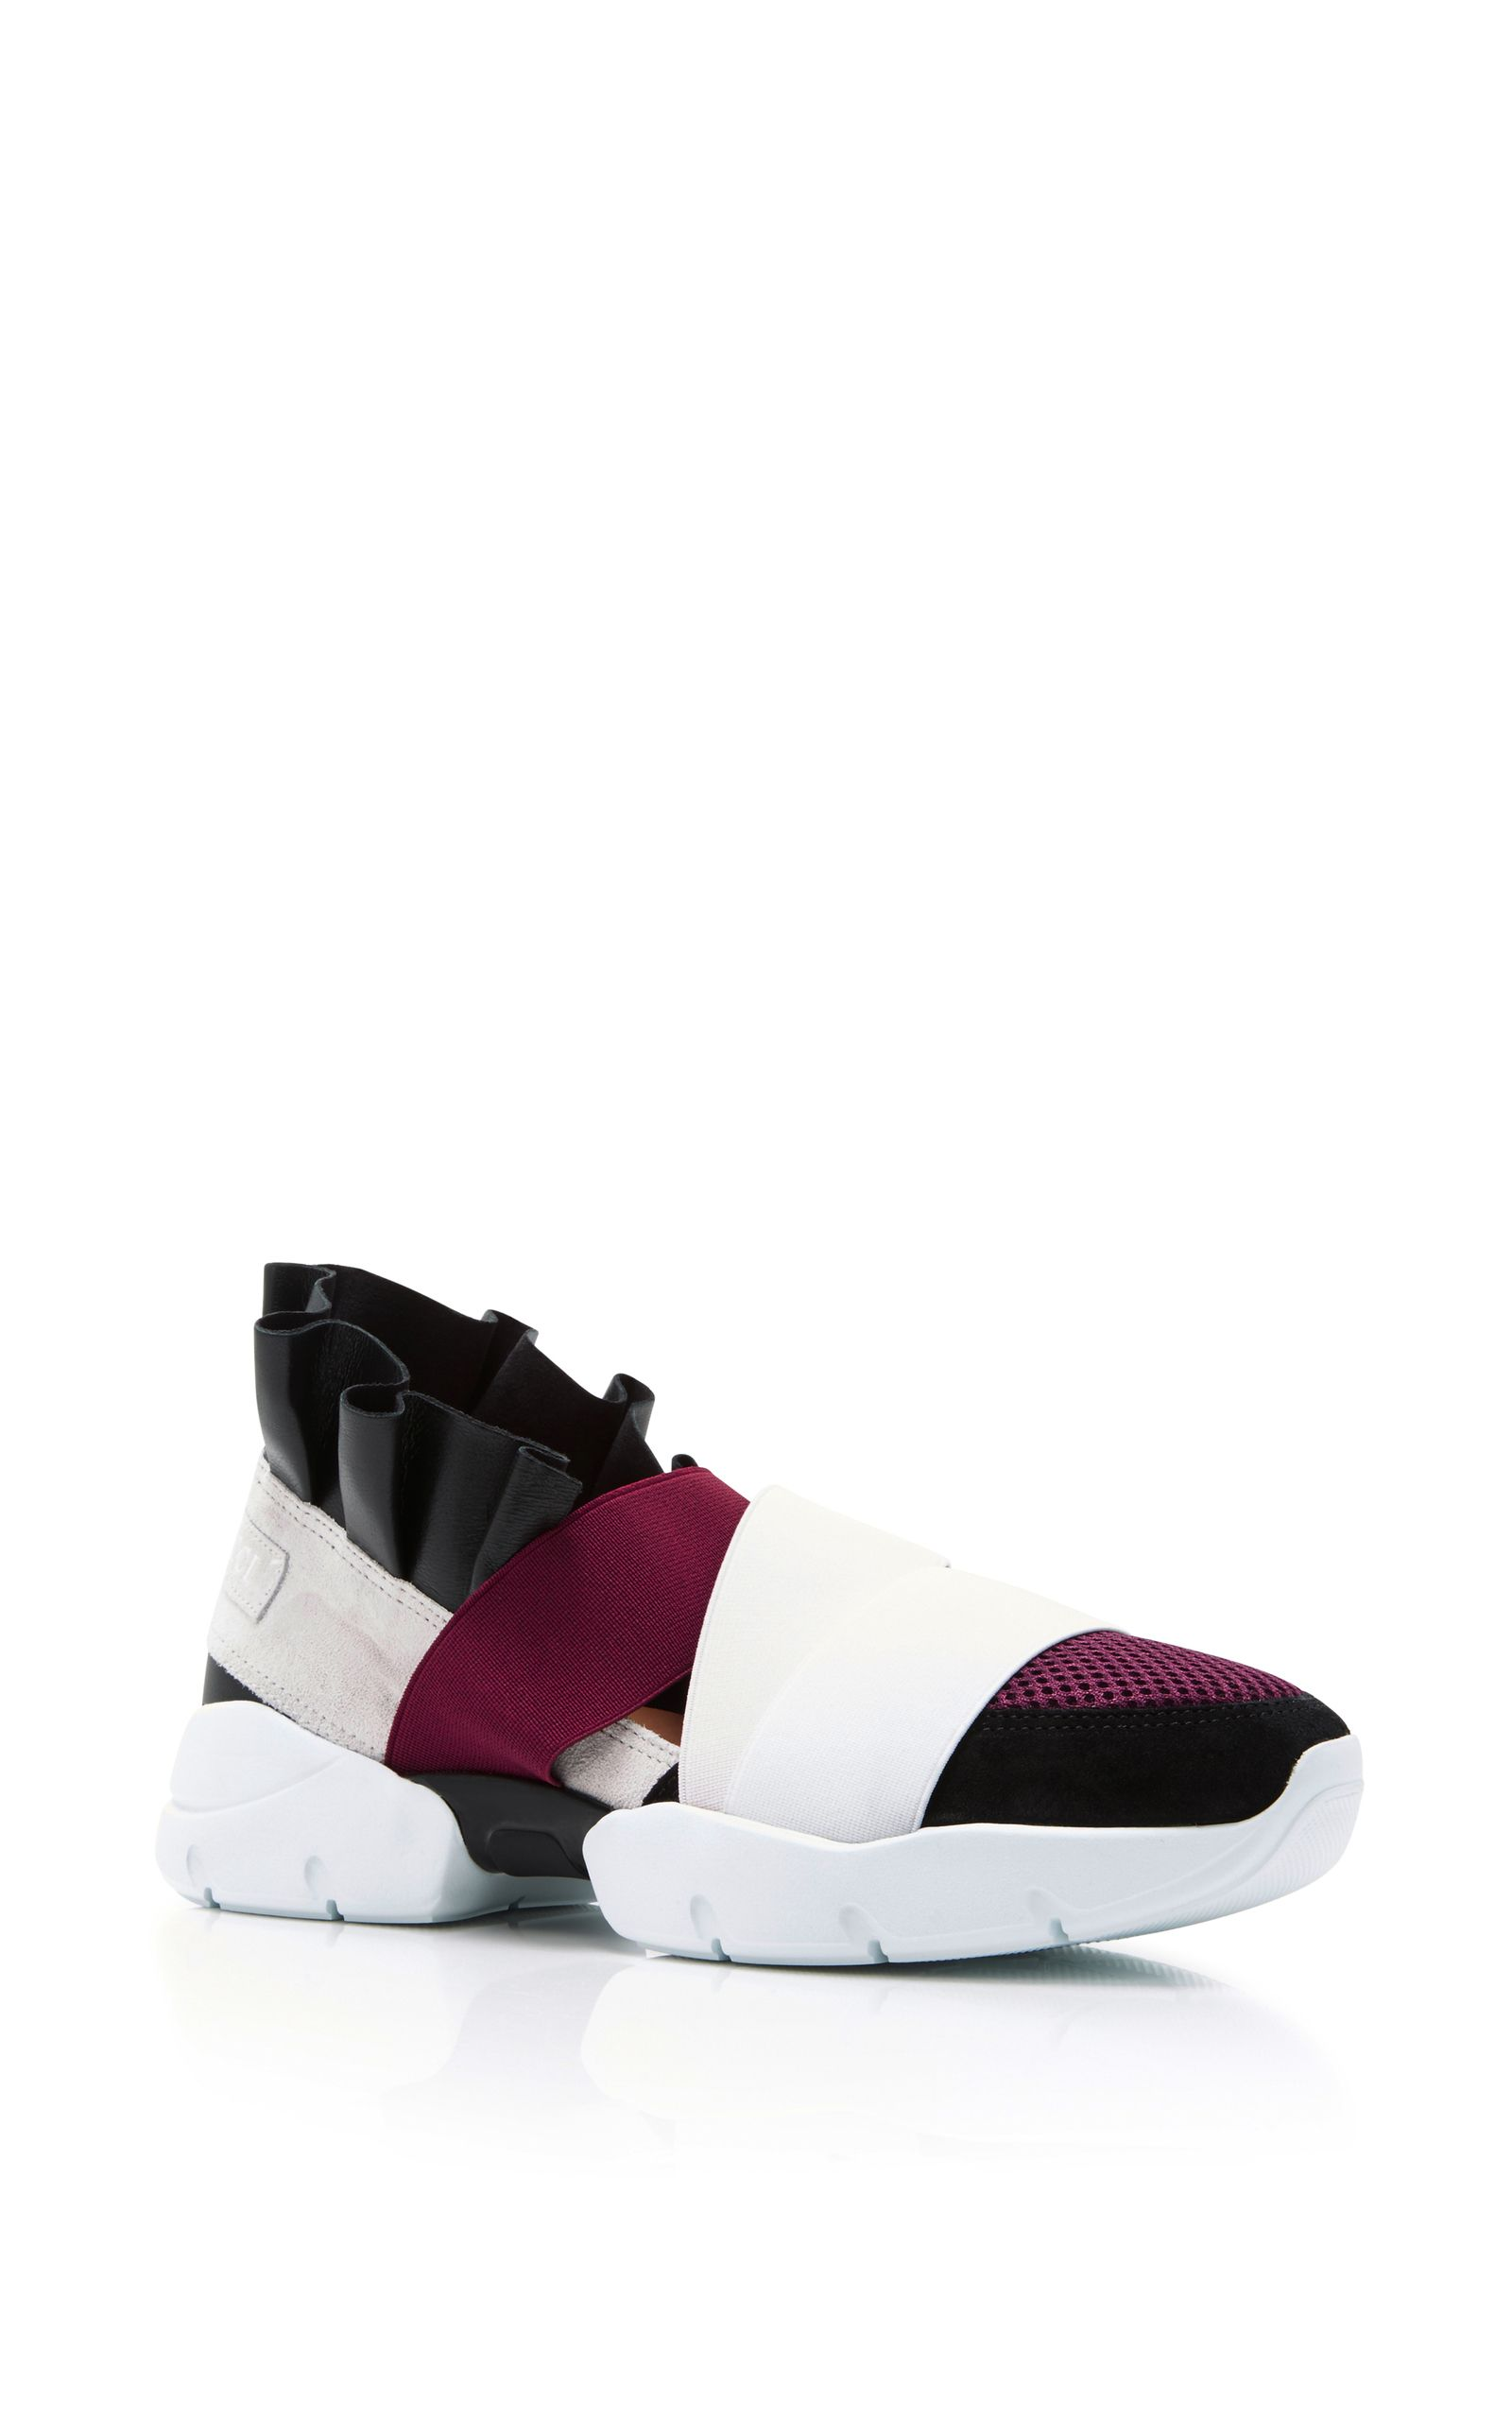 5448ee0e996c EMILIO PUCCI Leather And Elastane Sneakers.  emiliopucci  shoes  sneakers